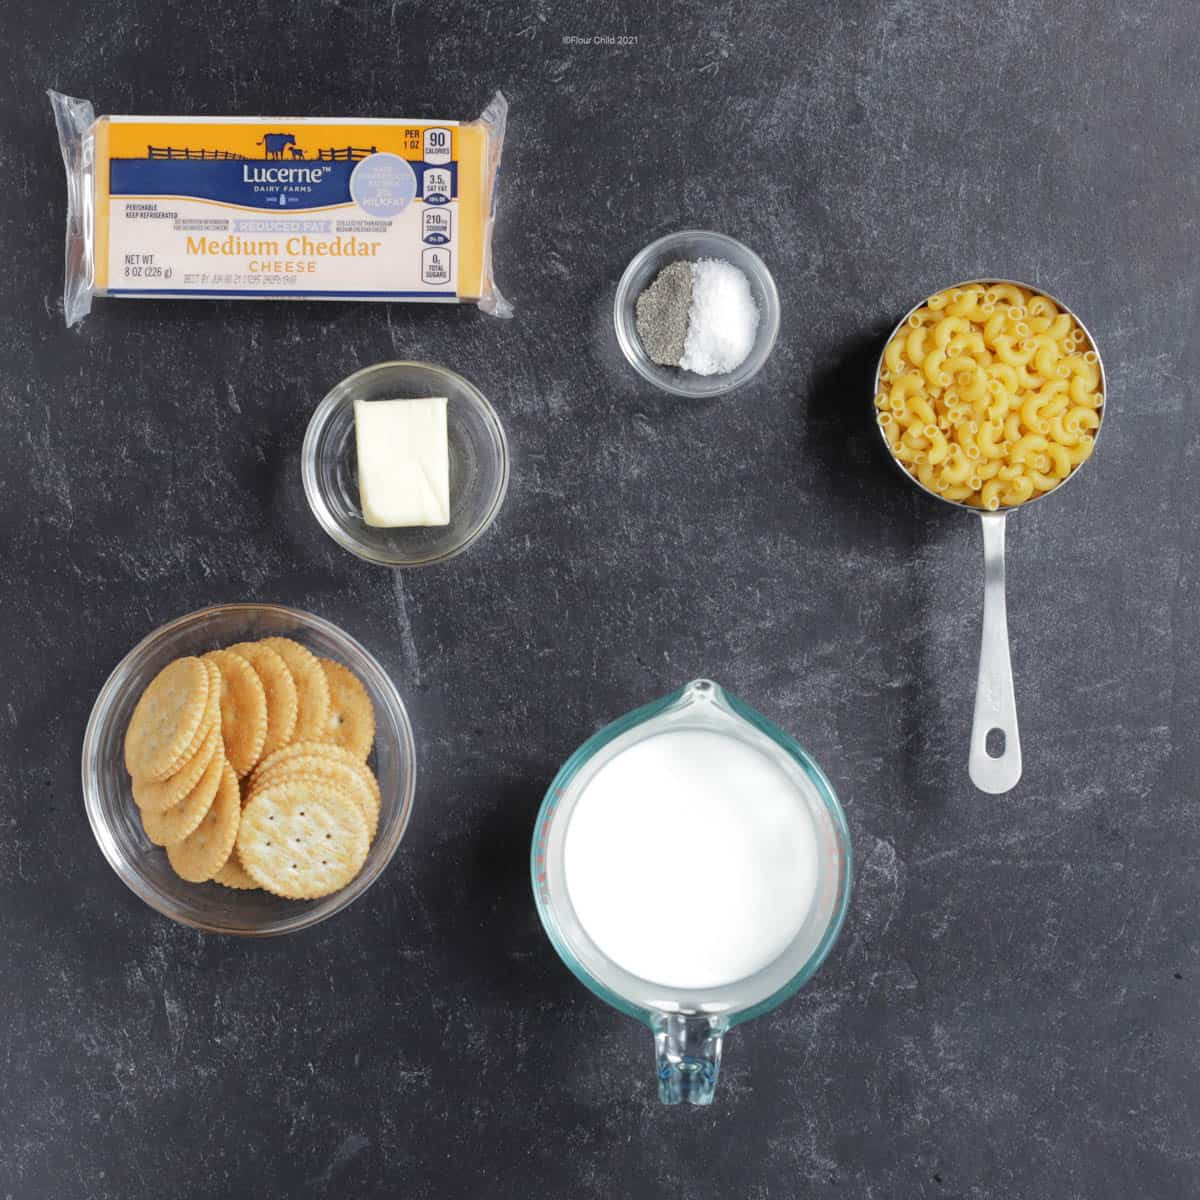 Ingredients for old fashioned macaroni and cheese